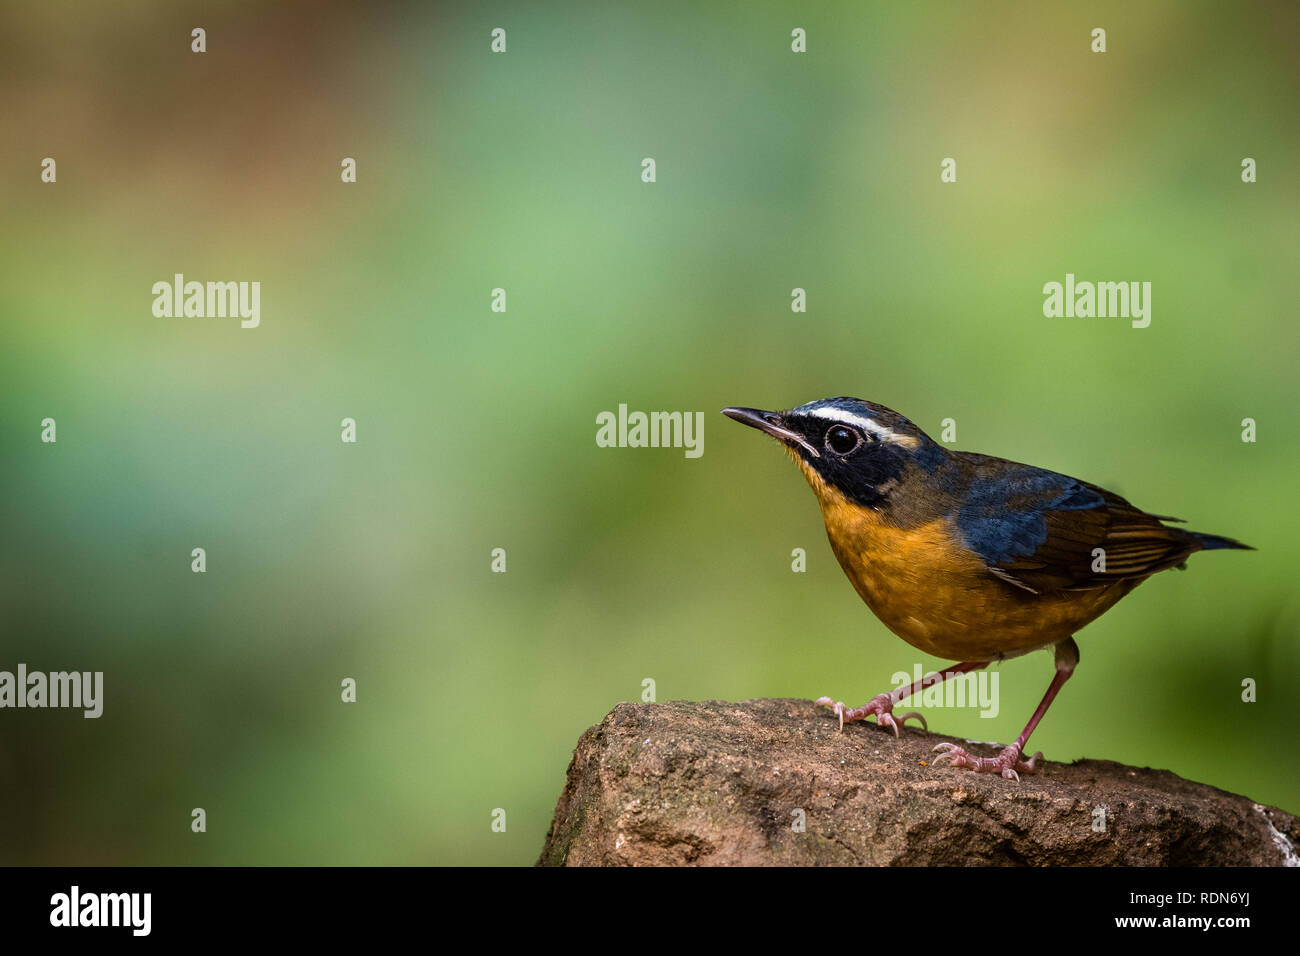 The Tiny Colorful Bird! - Stock Image